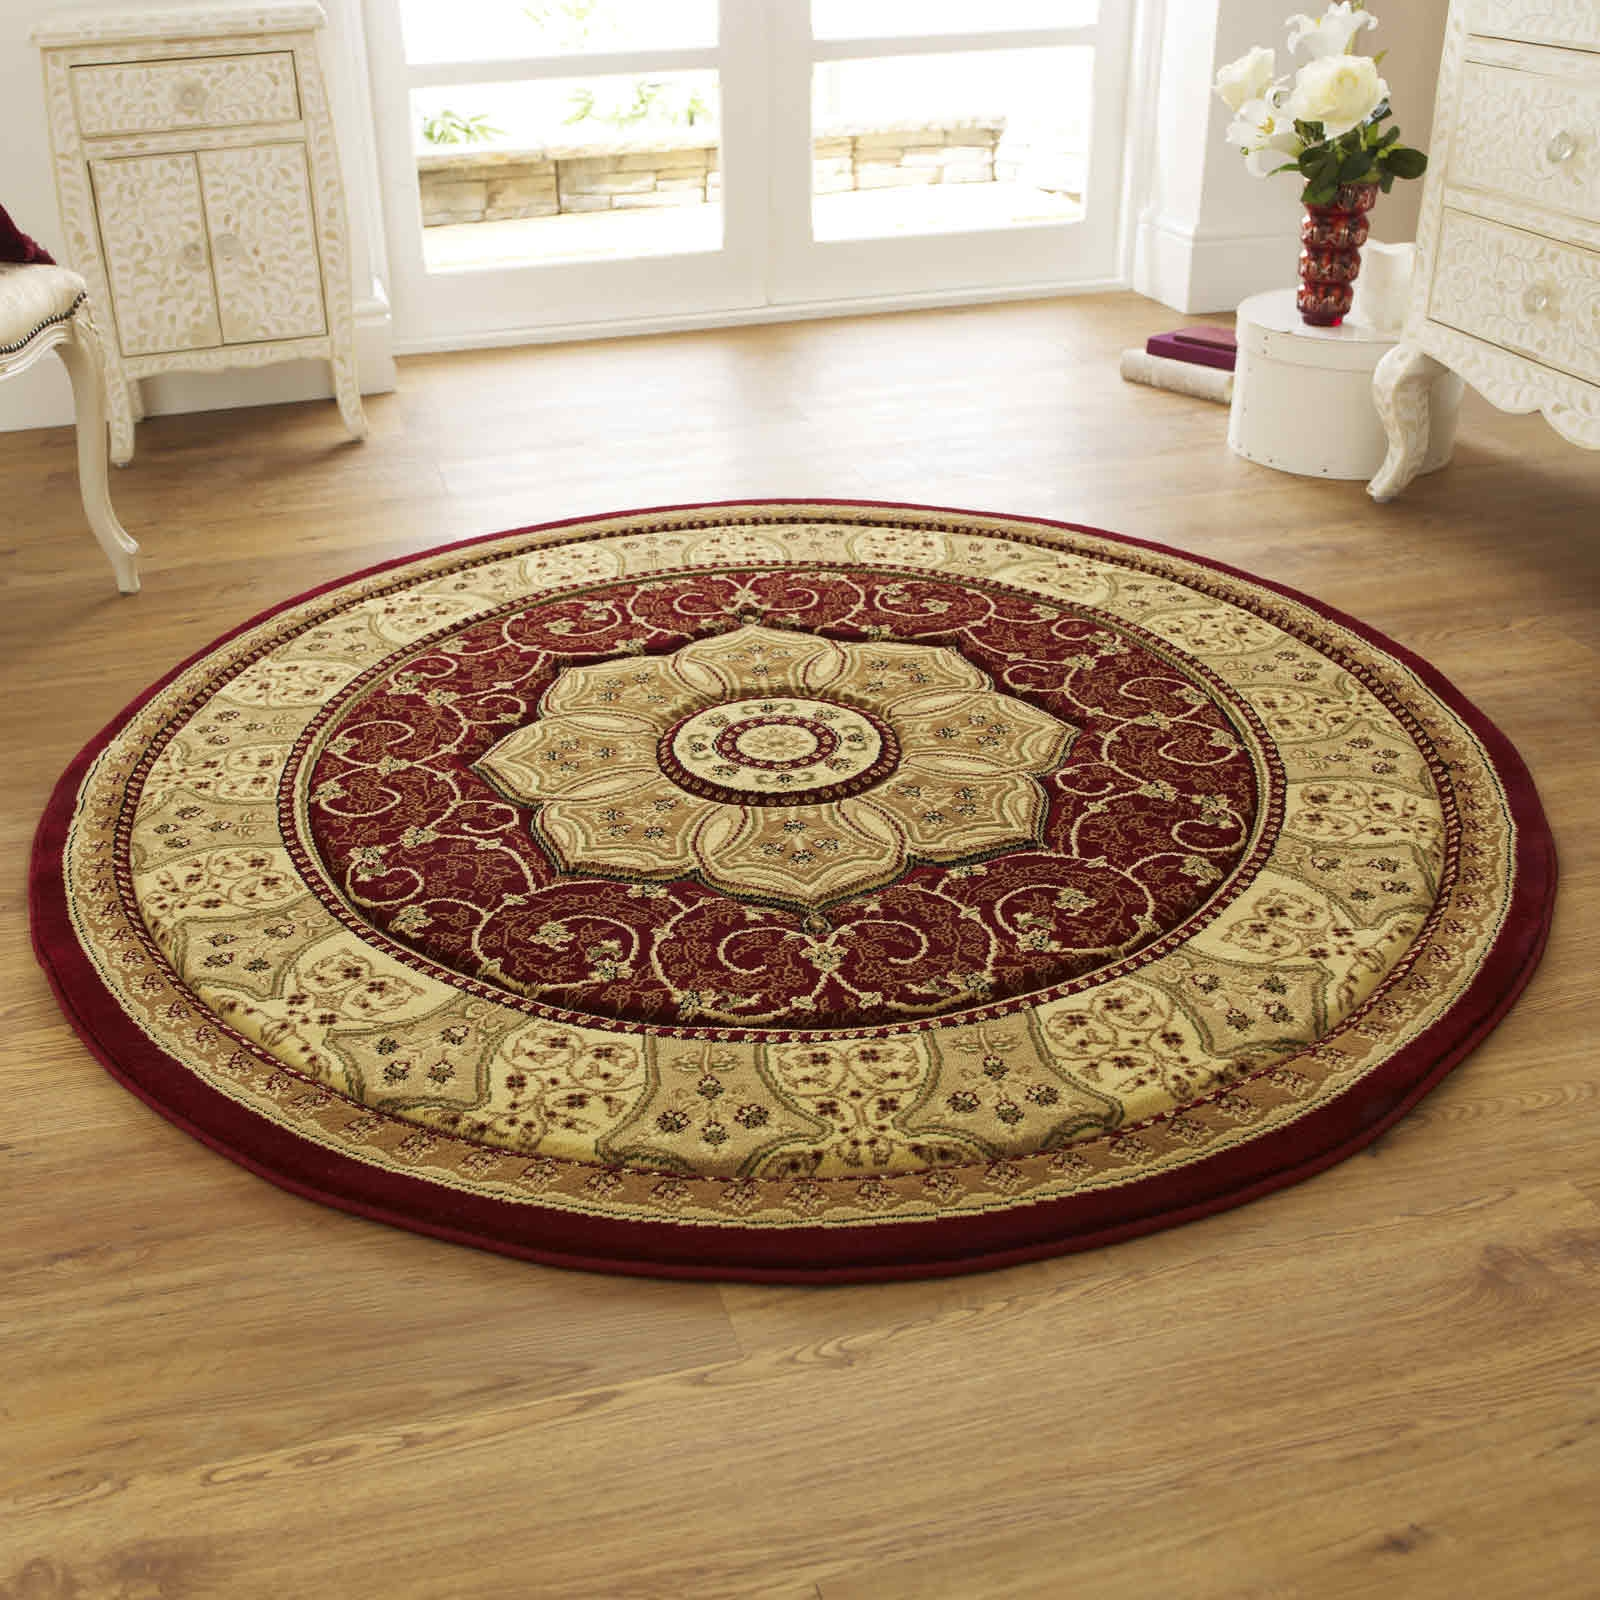 Heritage Circular Rugs Buy Online For Huge Savings Inside Circular Rugs (View 6 of 15)